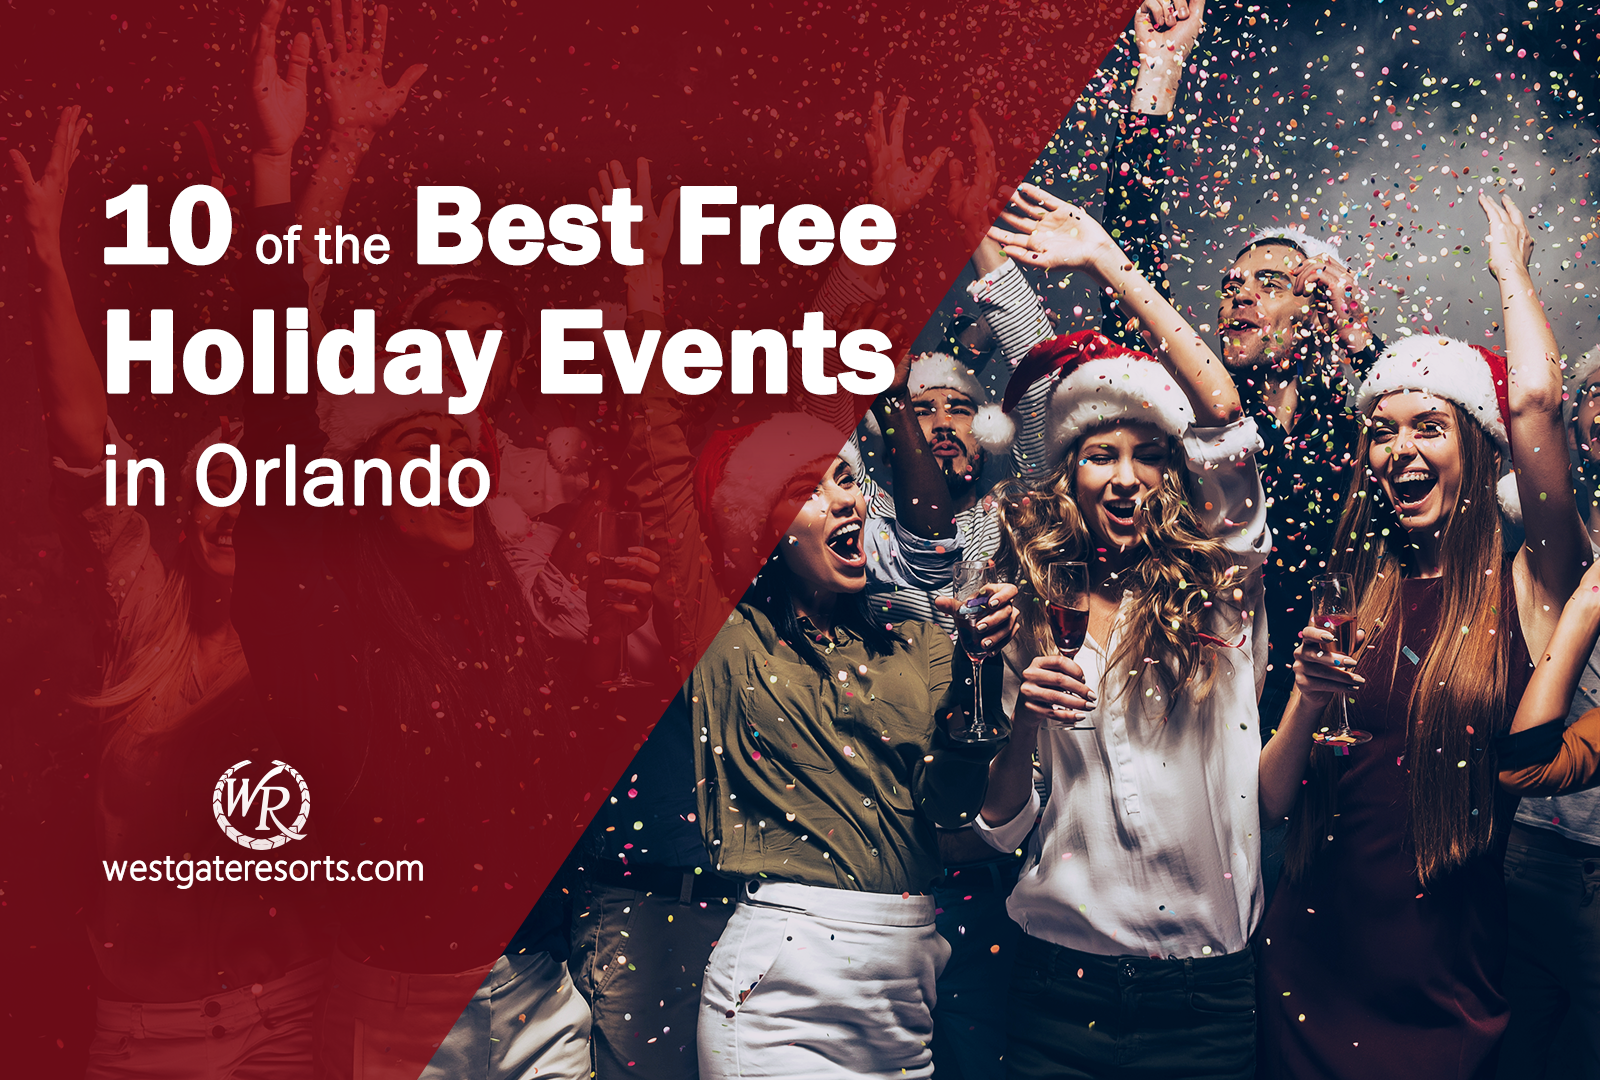 Pace Fl Christmas Parade 2021 10 Of The Best Free Christmas Events In Orlando Free Things To Do In Orlando Florida For Families